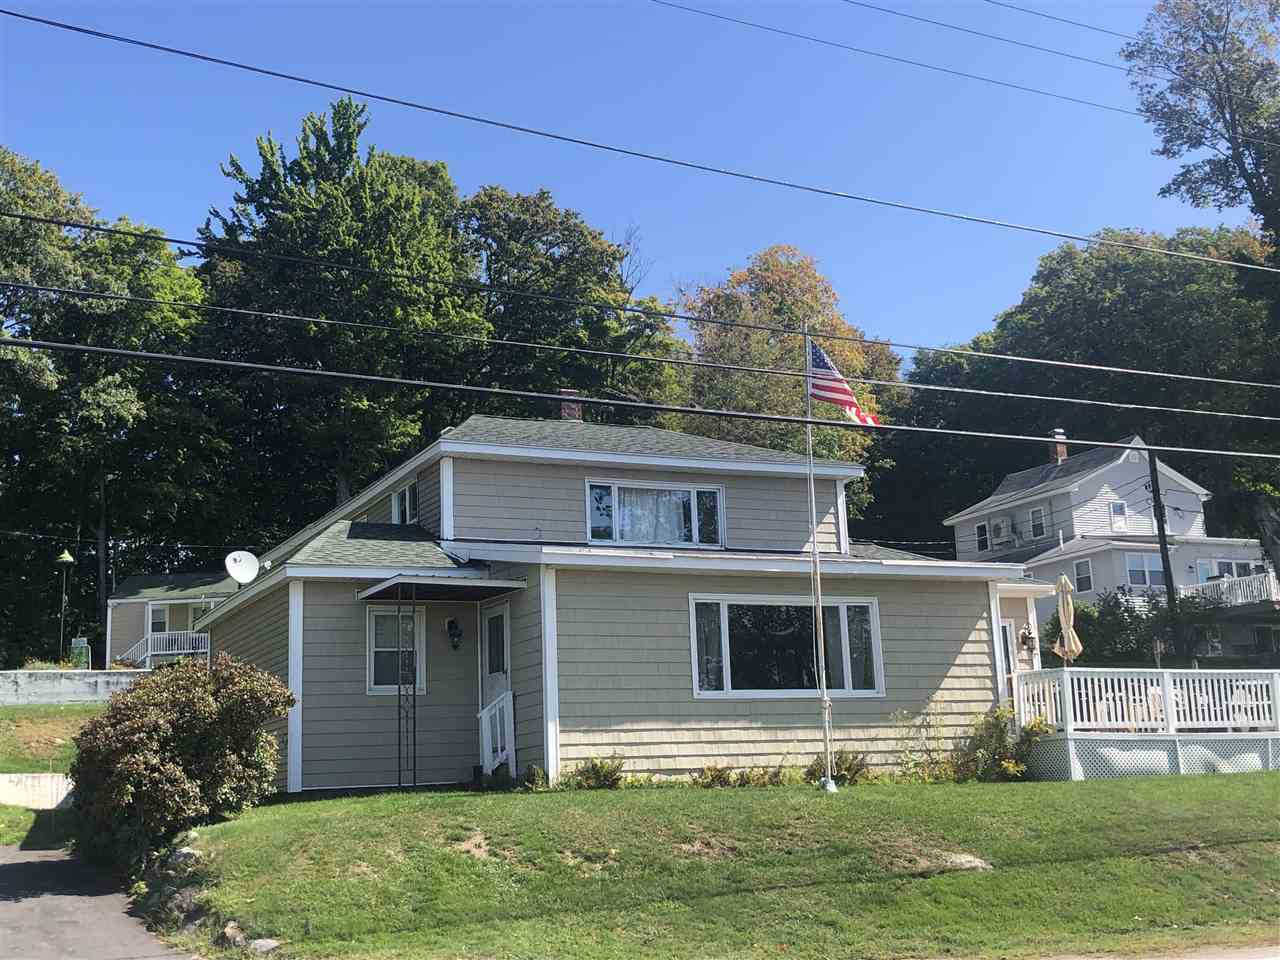 243 Weirs Laconia NH 03246